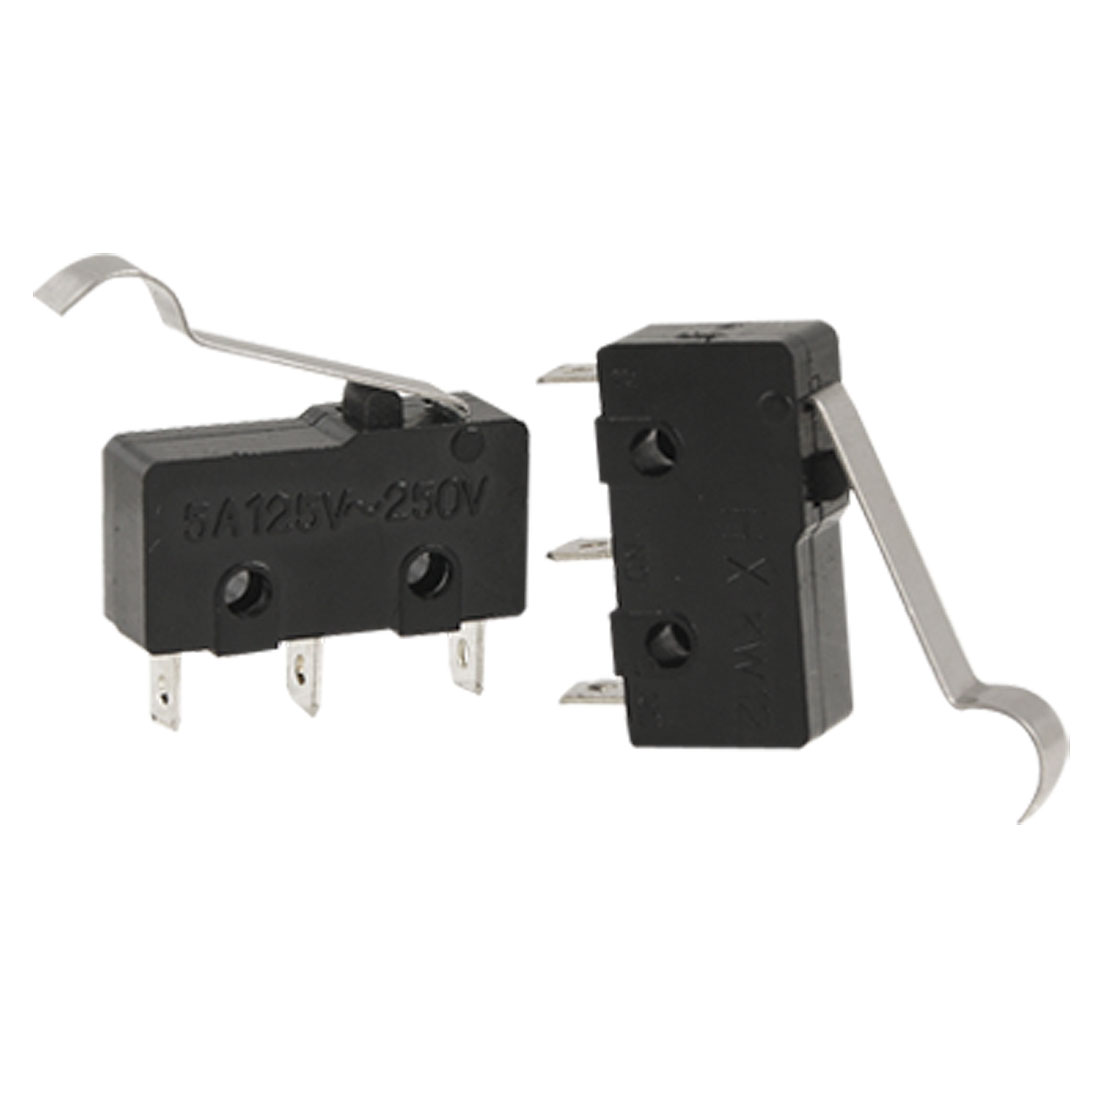 3 Pcs Hinge Lever Actuator Black Micro Switch 250V 5A